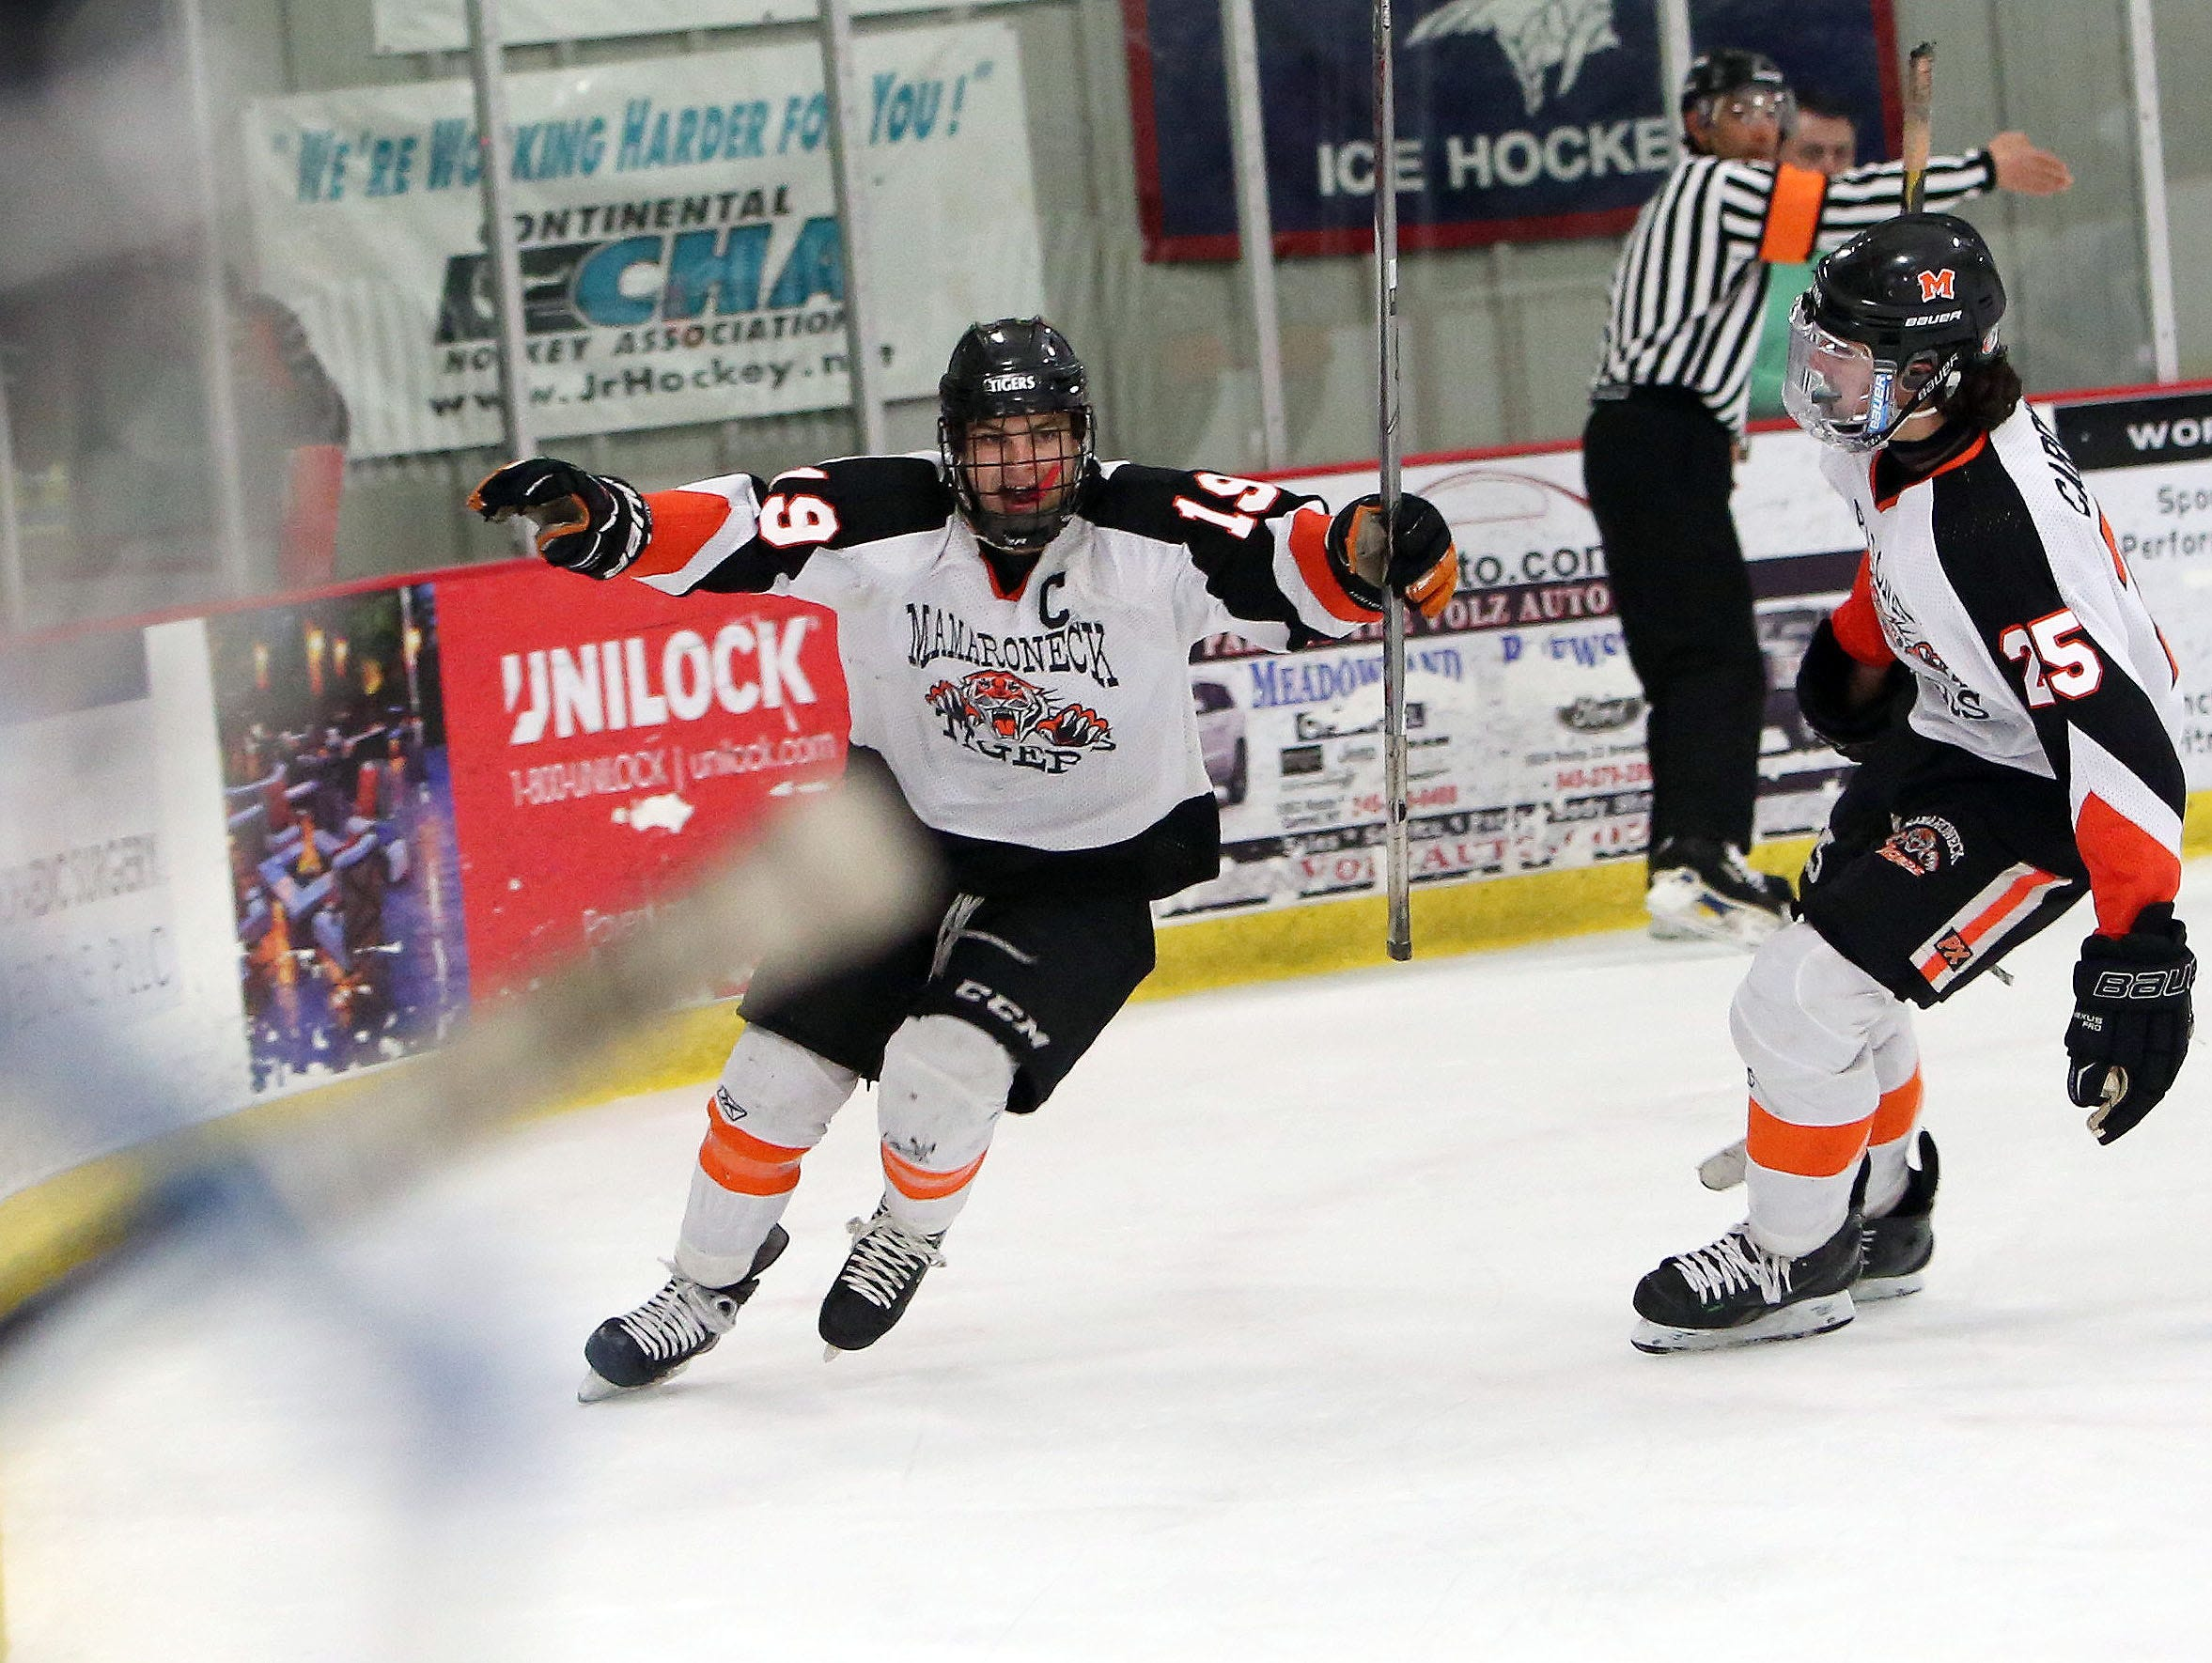 From left, Mamaroneck's Will Kirk (19) celebrates his third goal of the game against Suffern during the Section 1 championship hockey game at The Brewster Sports Arena Feb. 26, 2016. Mamaroneck won the game 5-1.